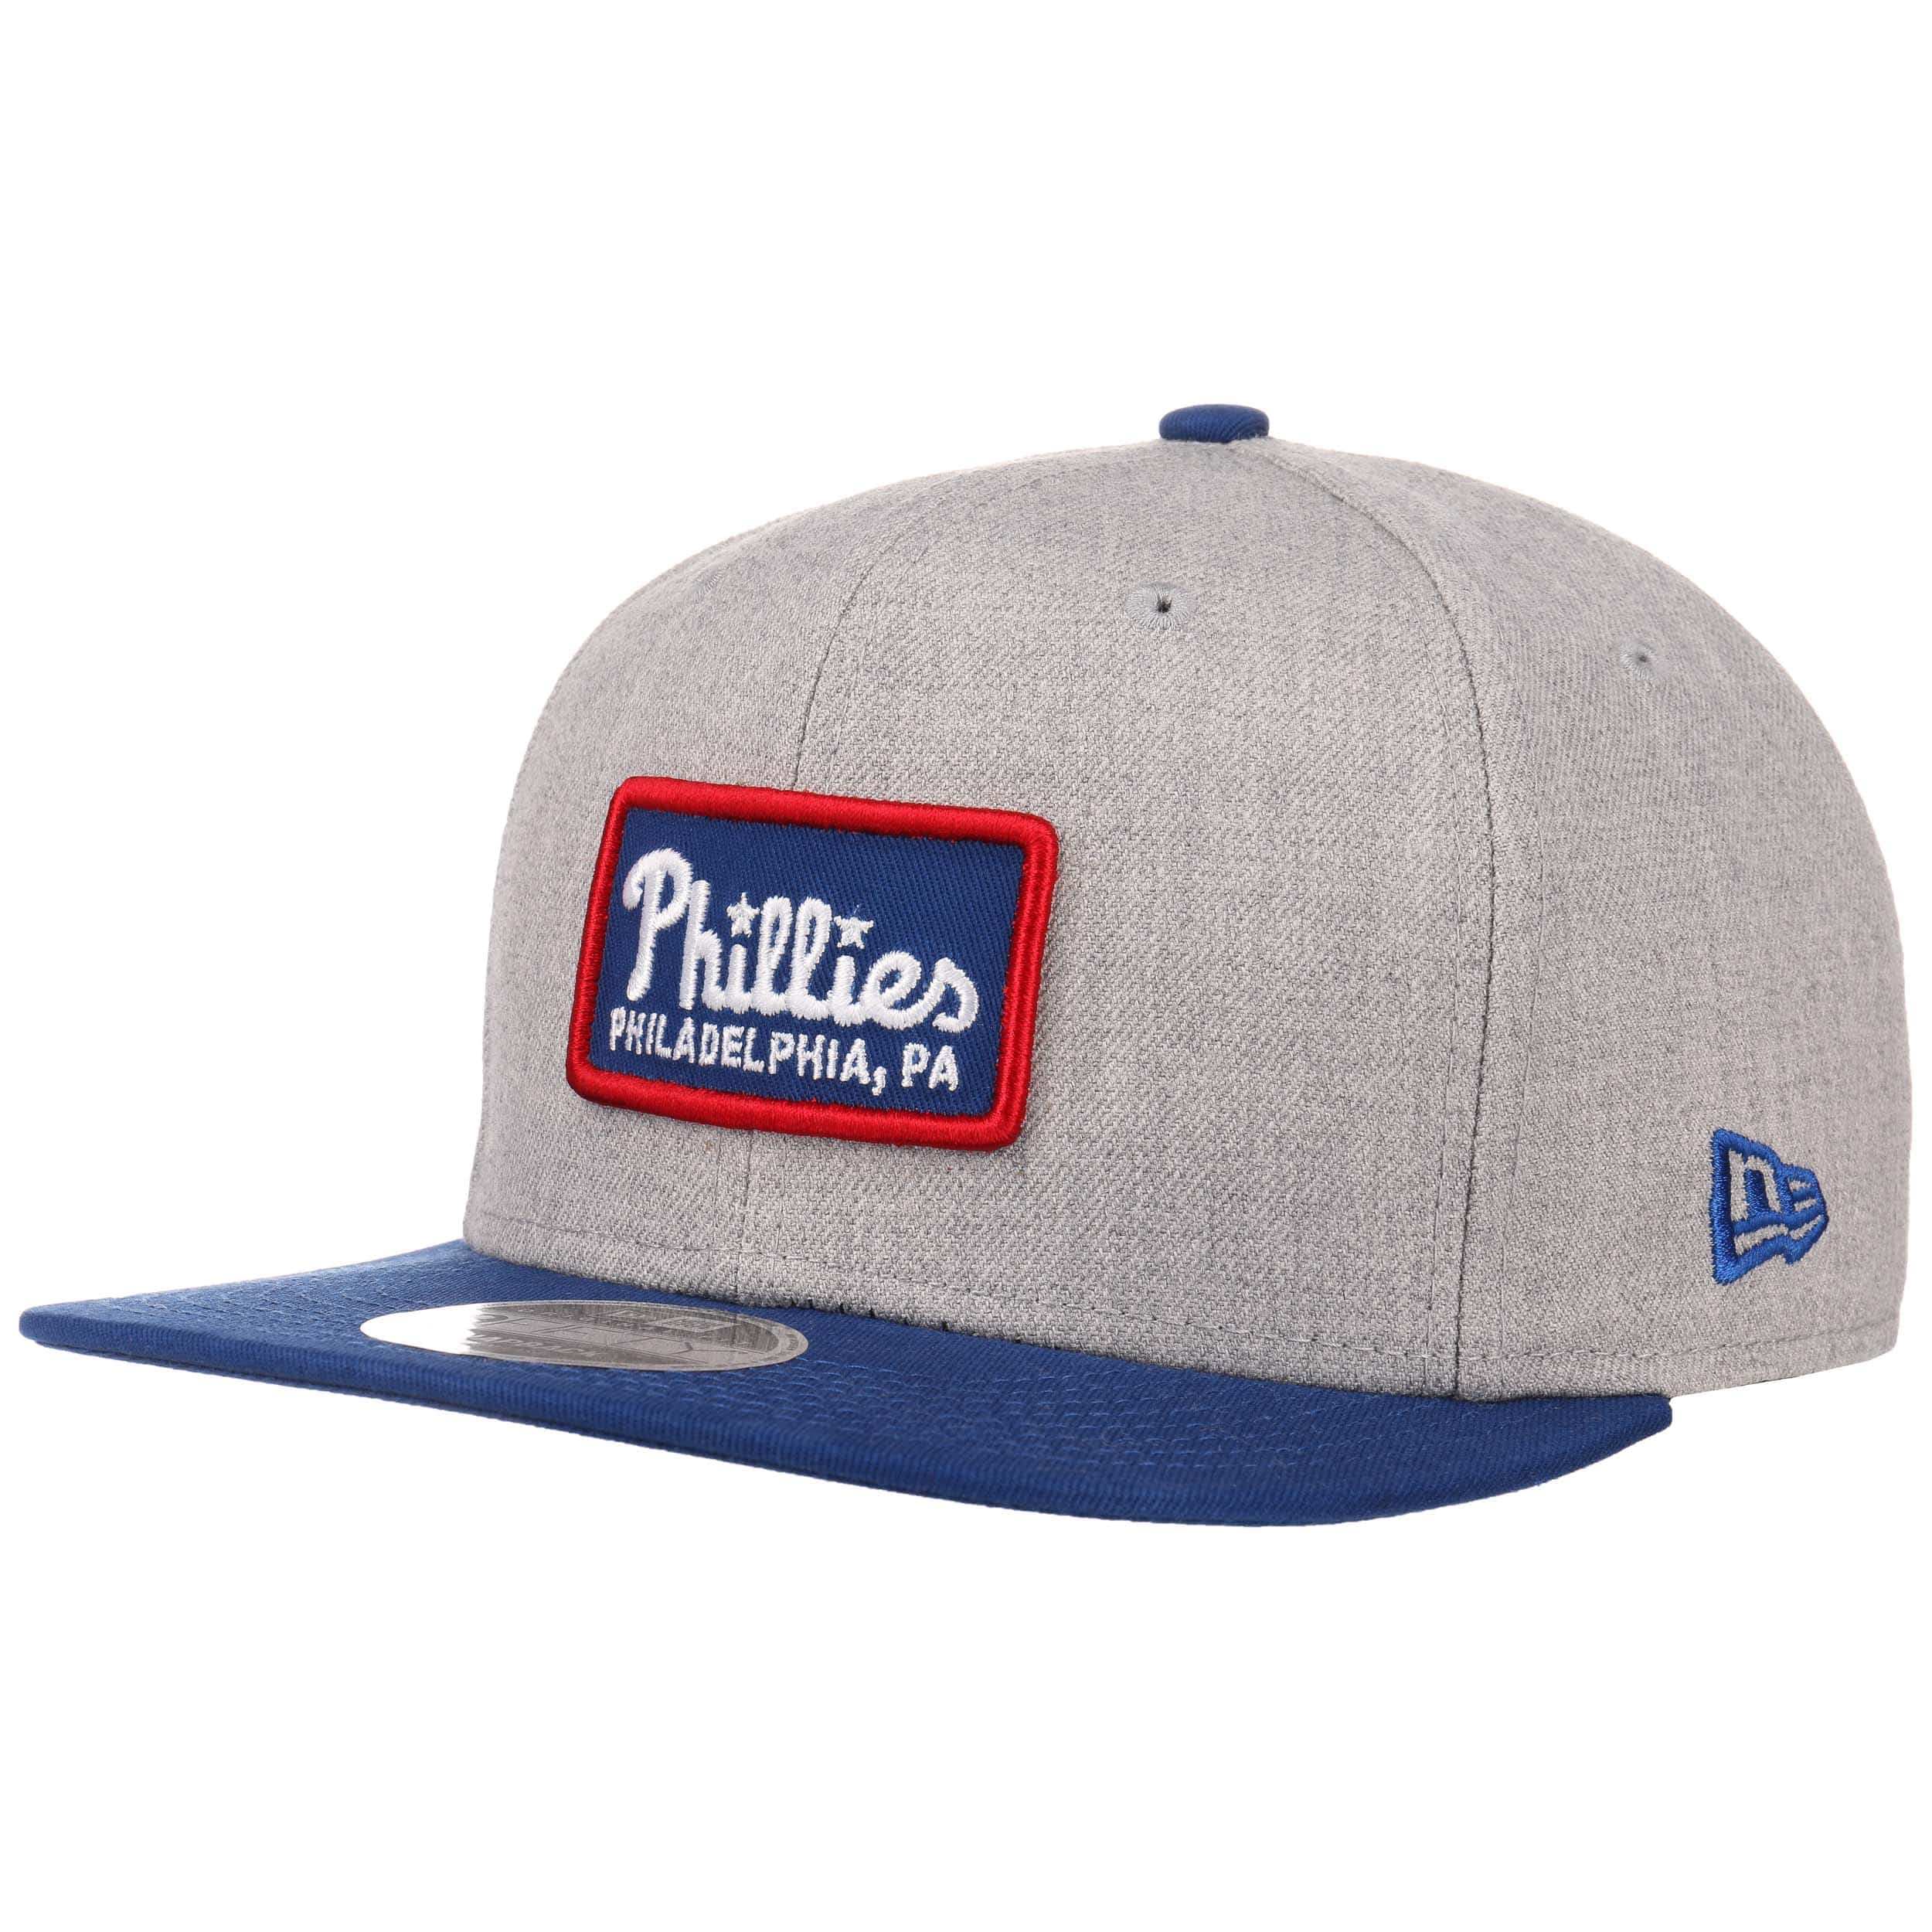 ... 9Fifty Patch Phillies Cap by New Era - grey 6 4a2d712b586